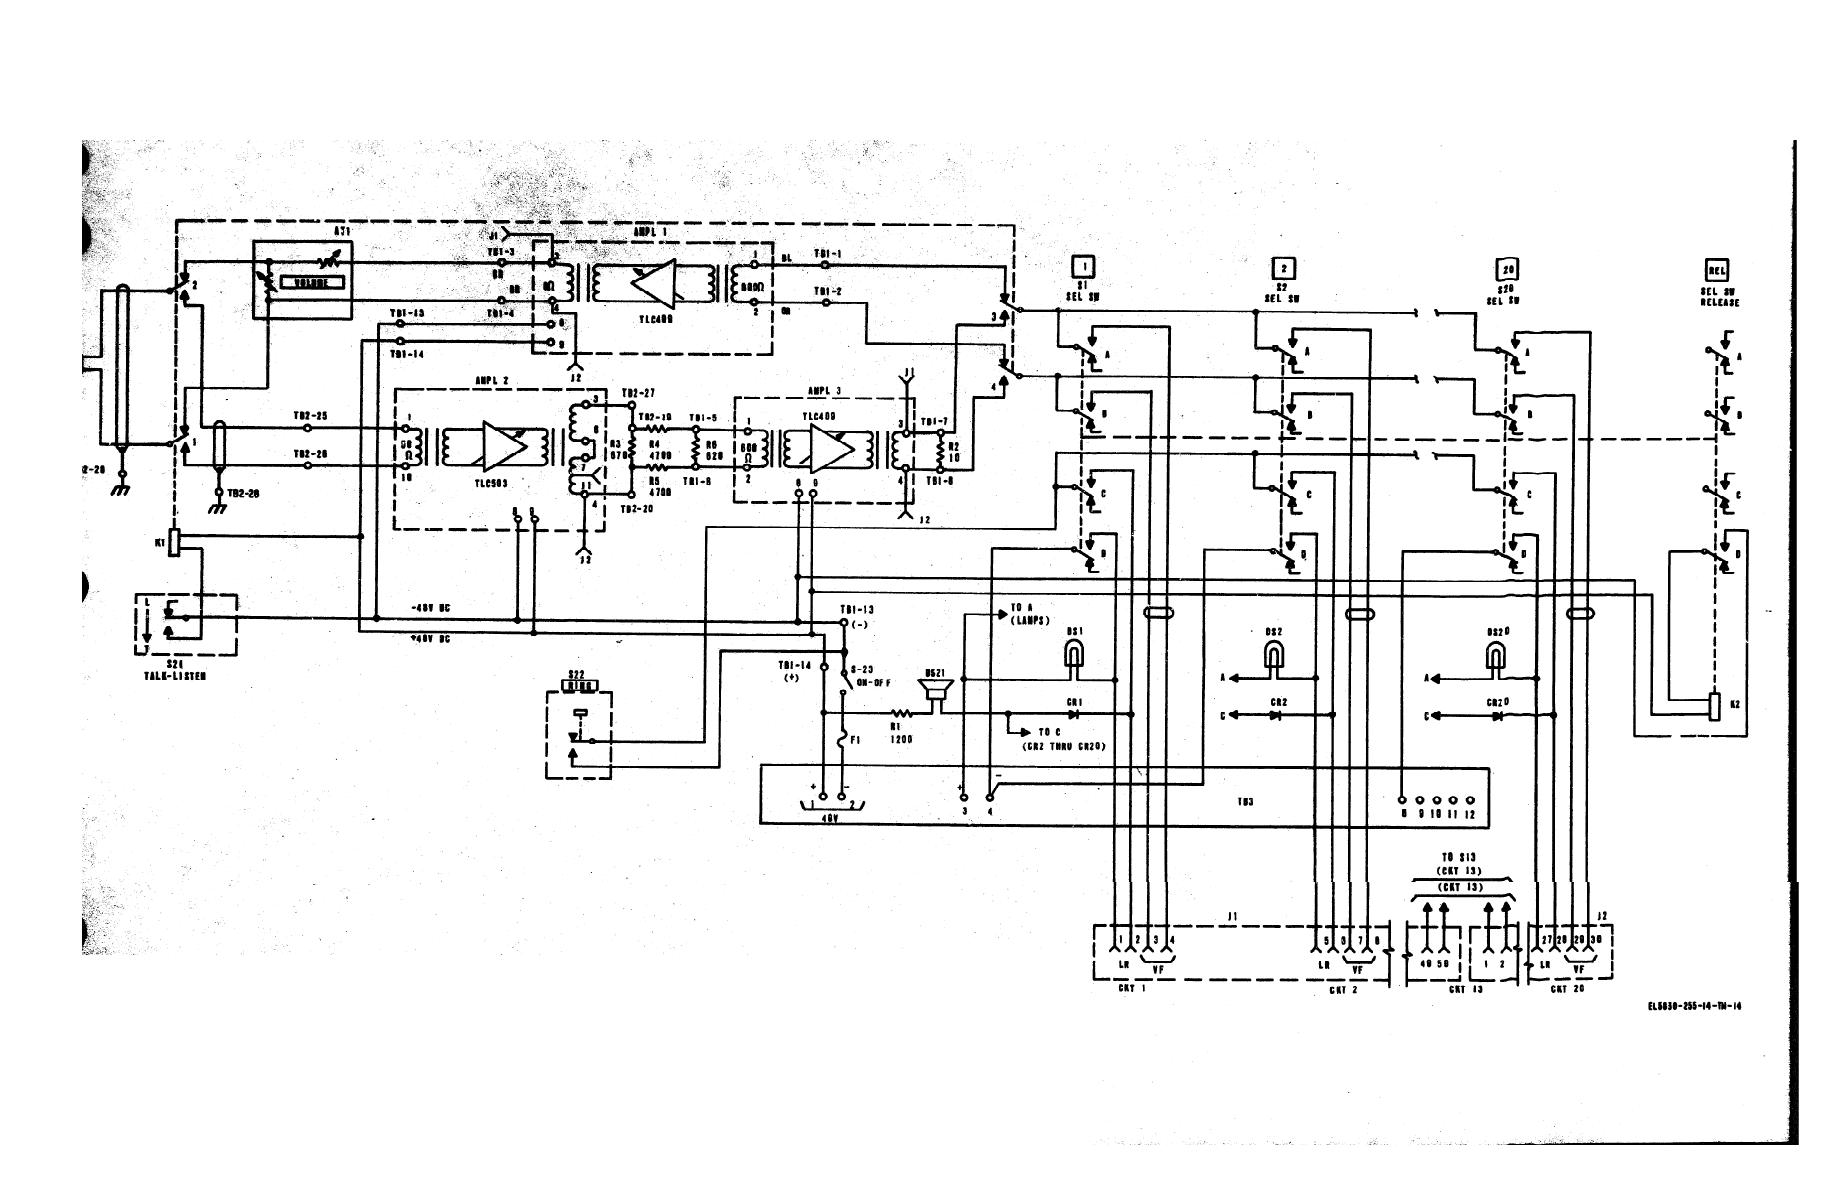 Pacific intercom system wiring diagram nutone